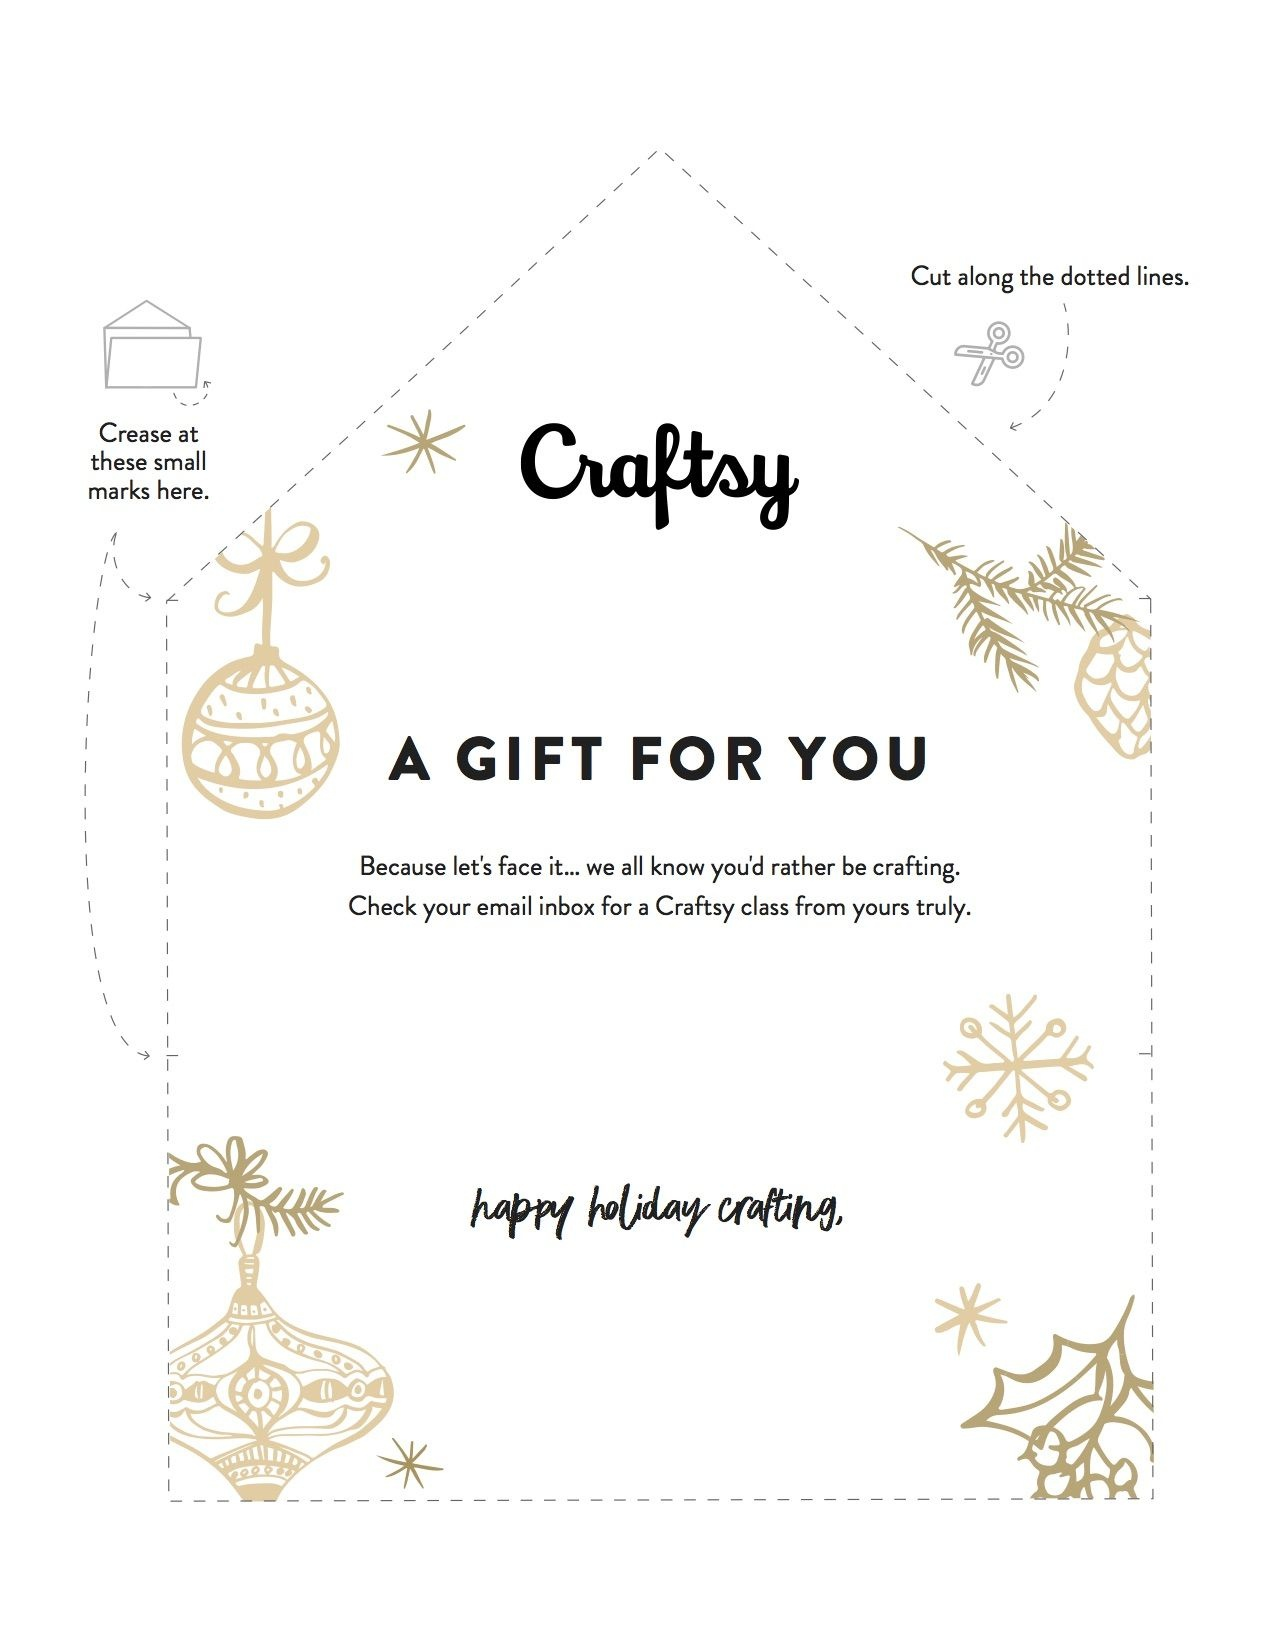 A Free Printable Gift Certificate For Craftsy Classes   Printables - Free Printable Xmas Gift Certificates